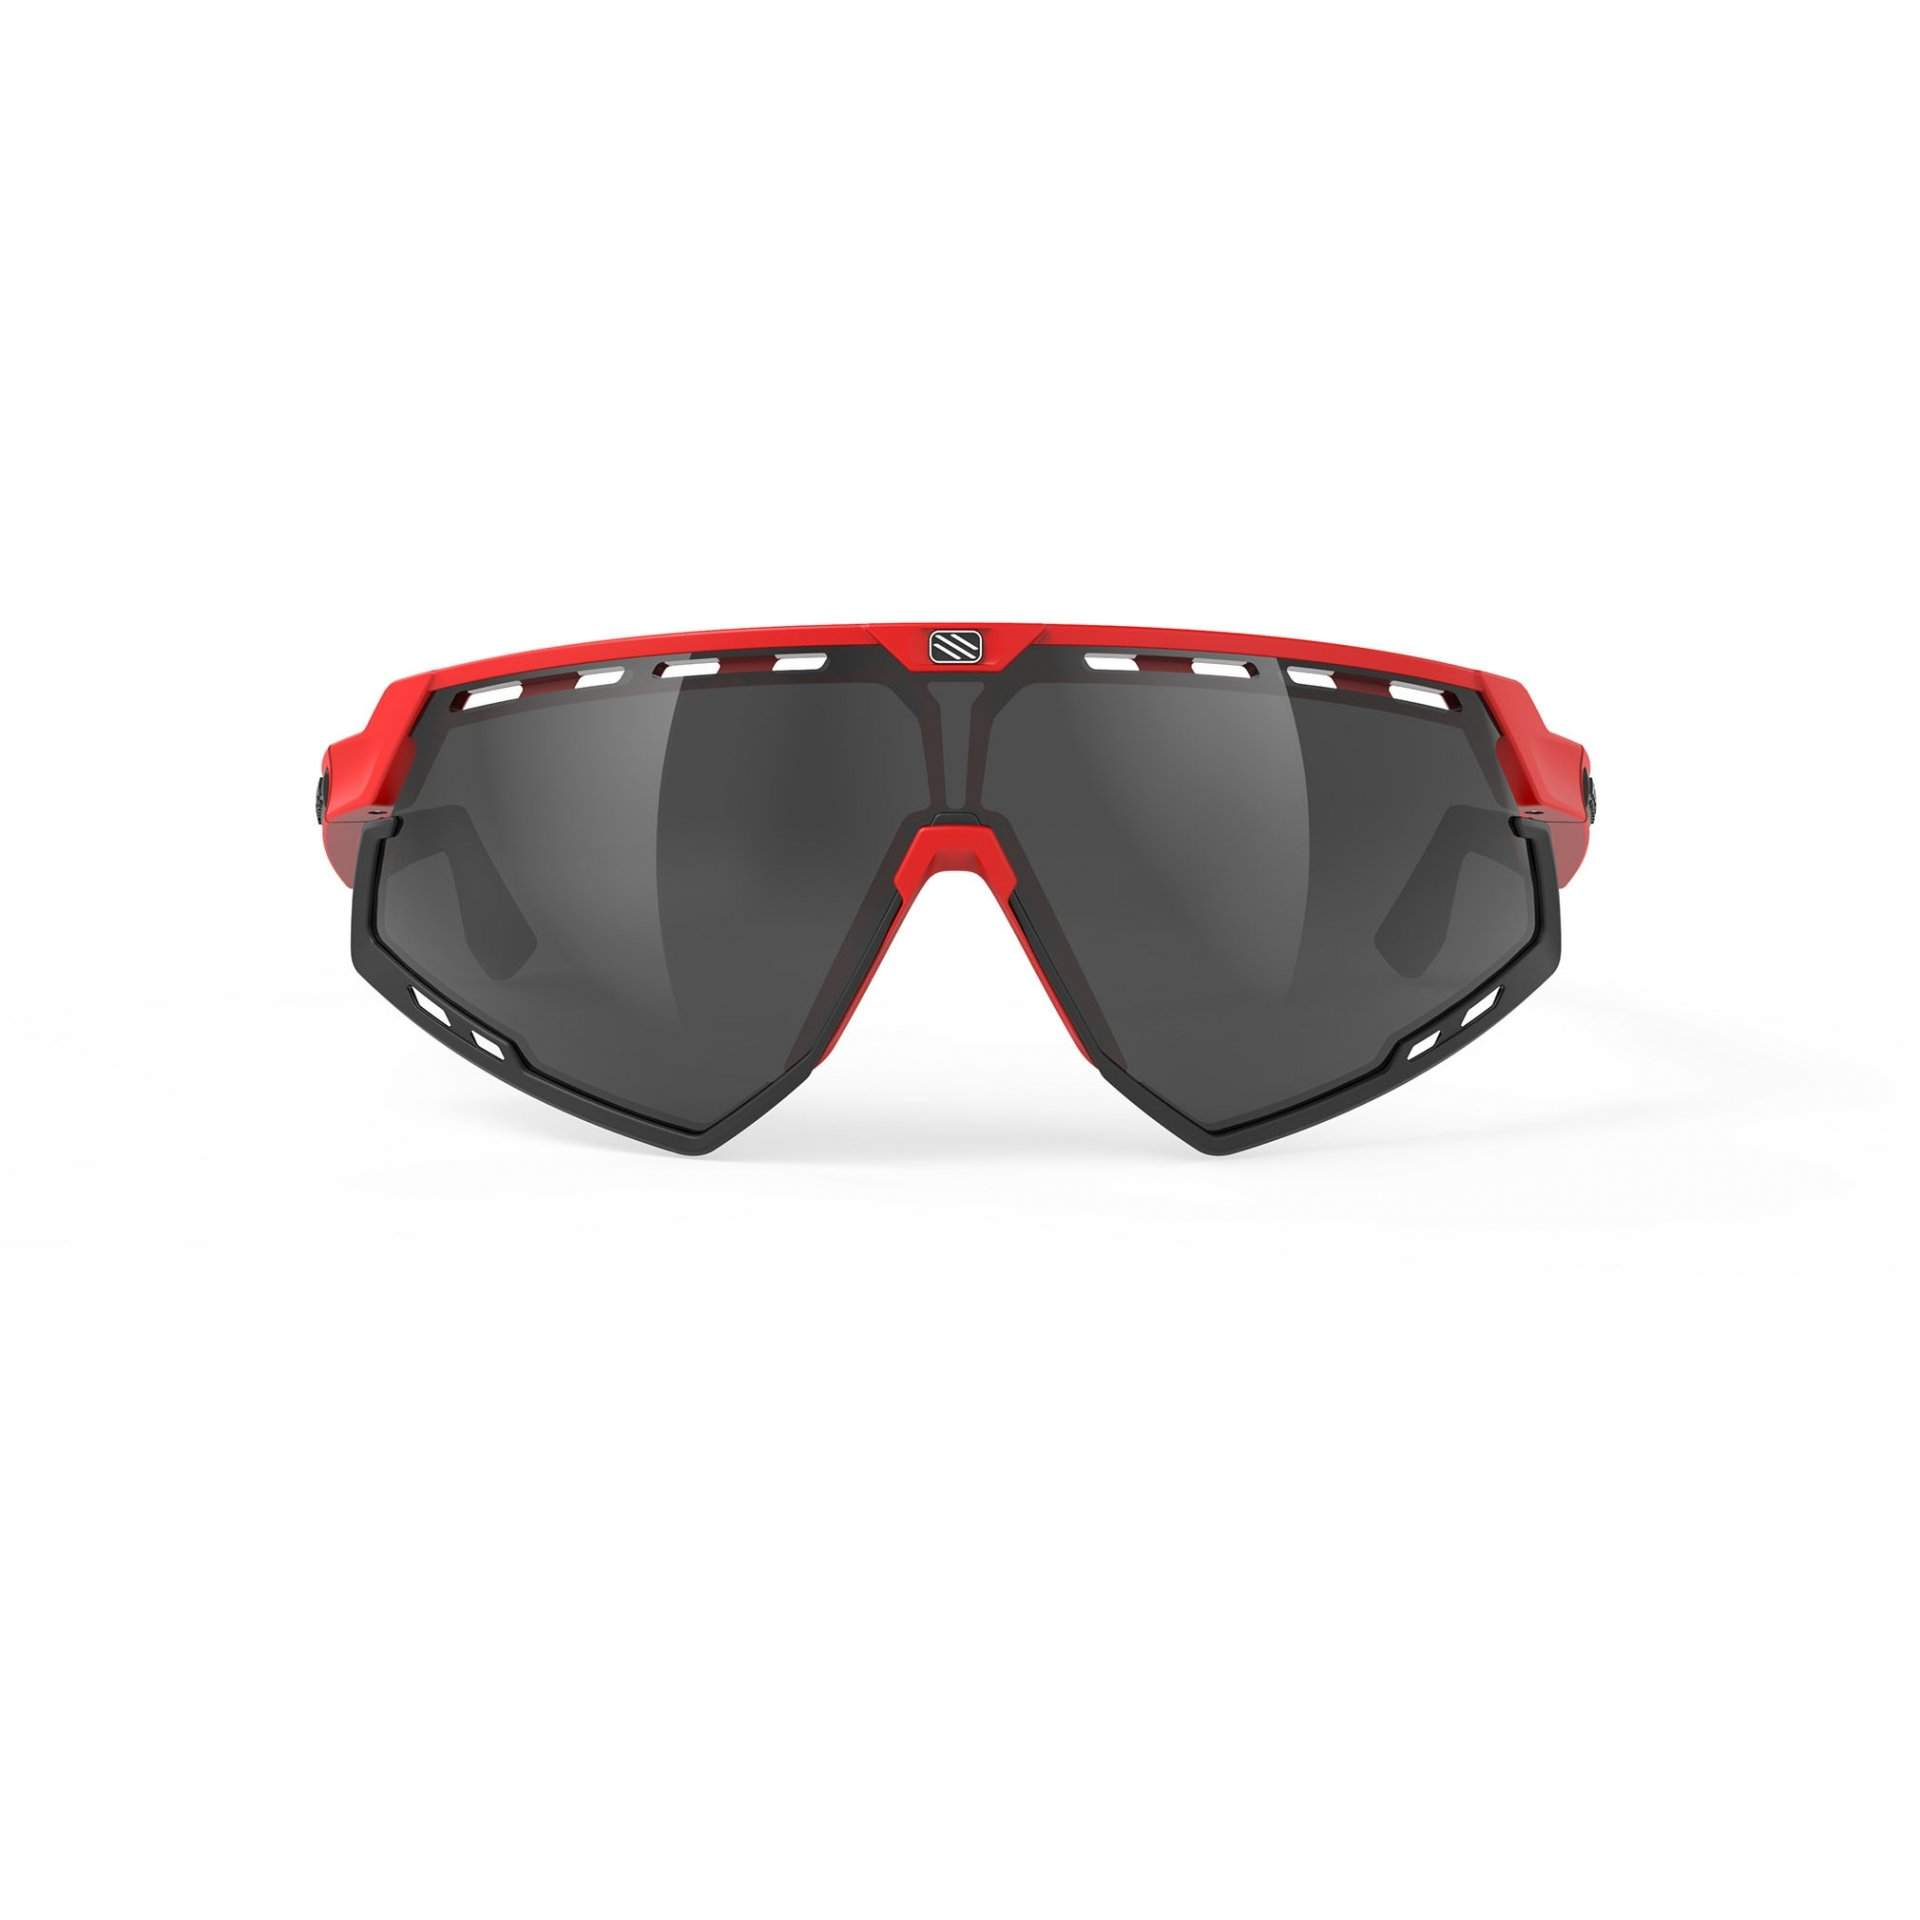 OKULARY RUDY PROJECT DEFENDER FIRE RED MATTE|SMOKE BLACK 2